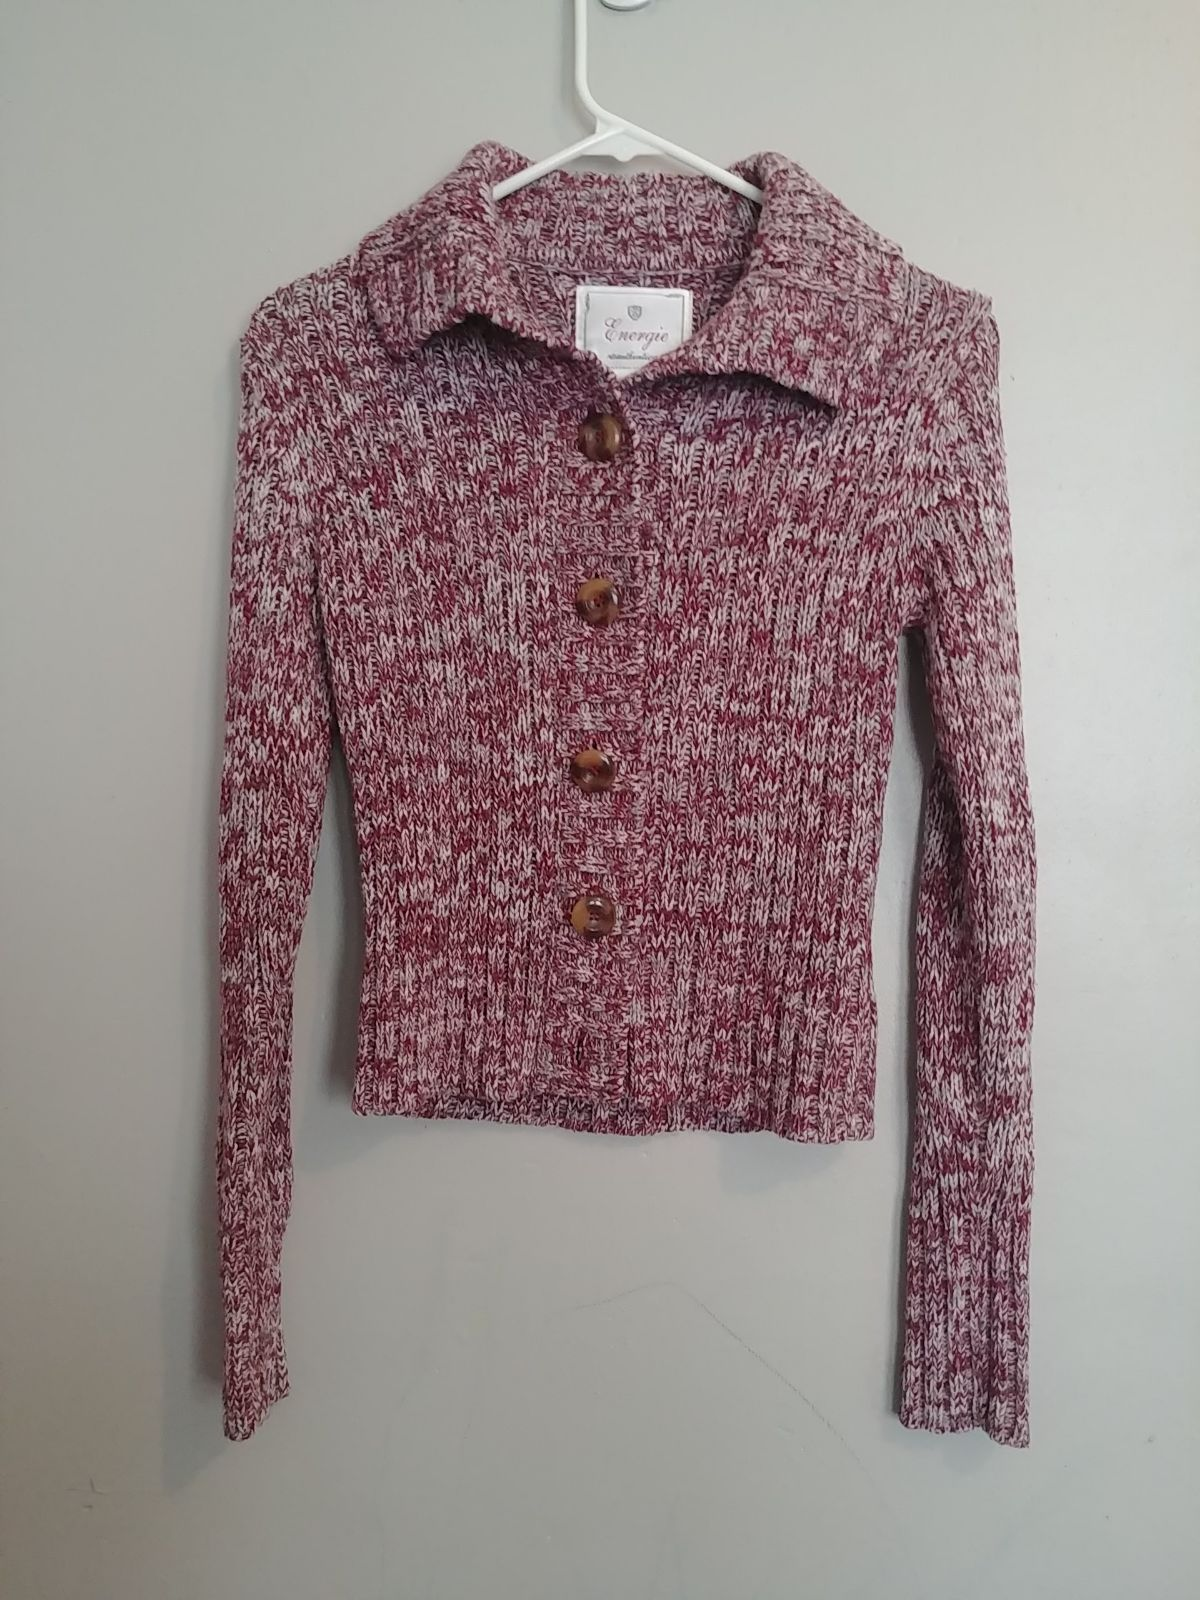 Energie Women's Sweater Size Small